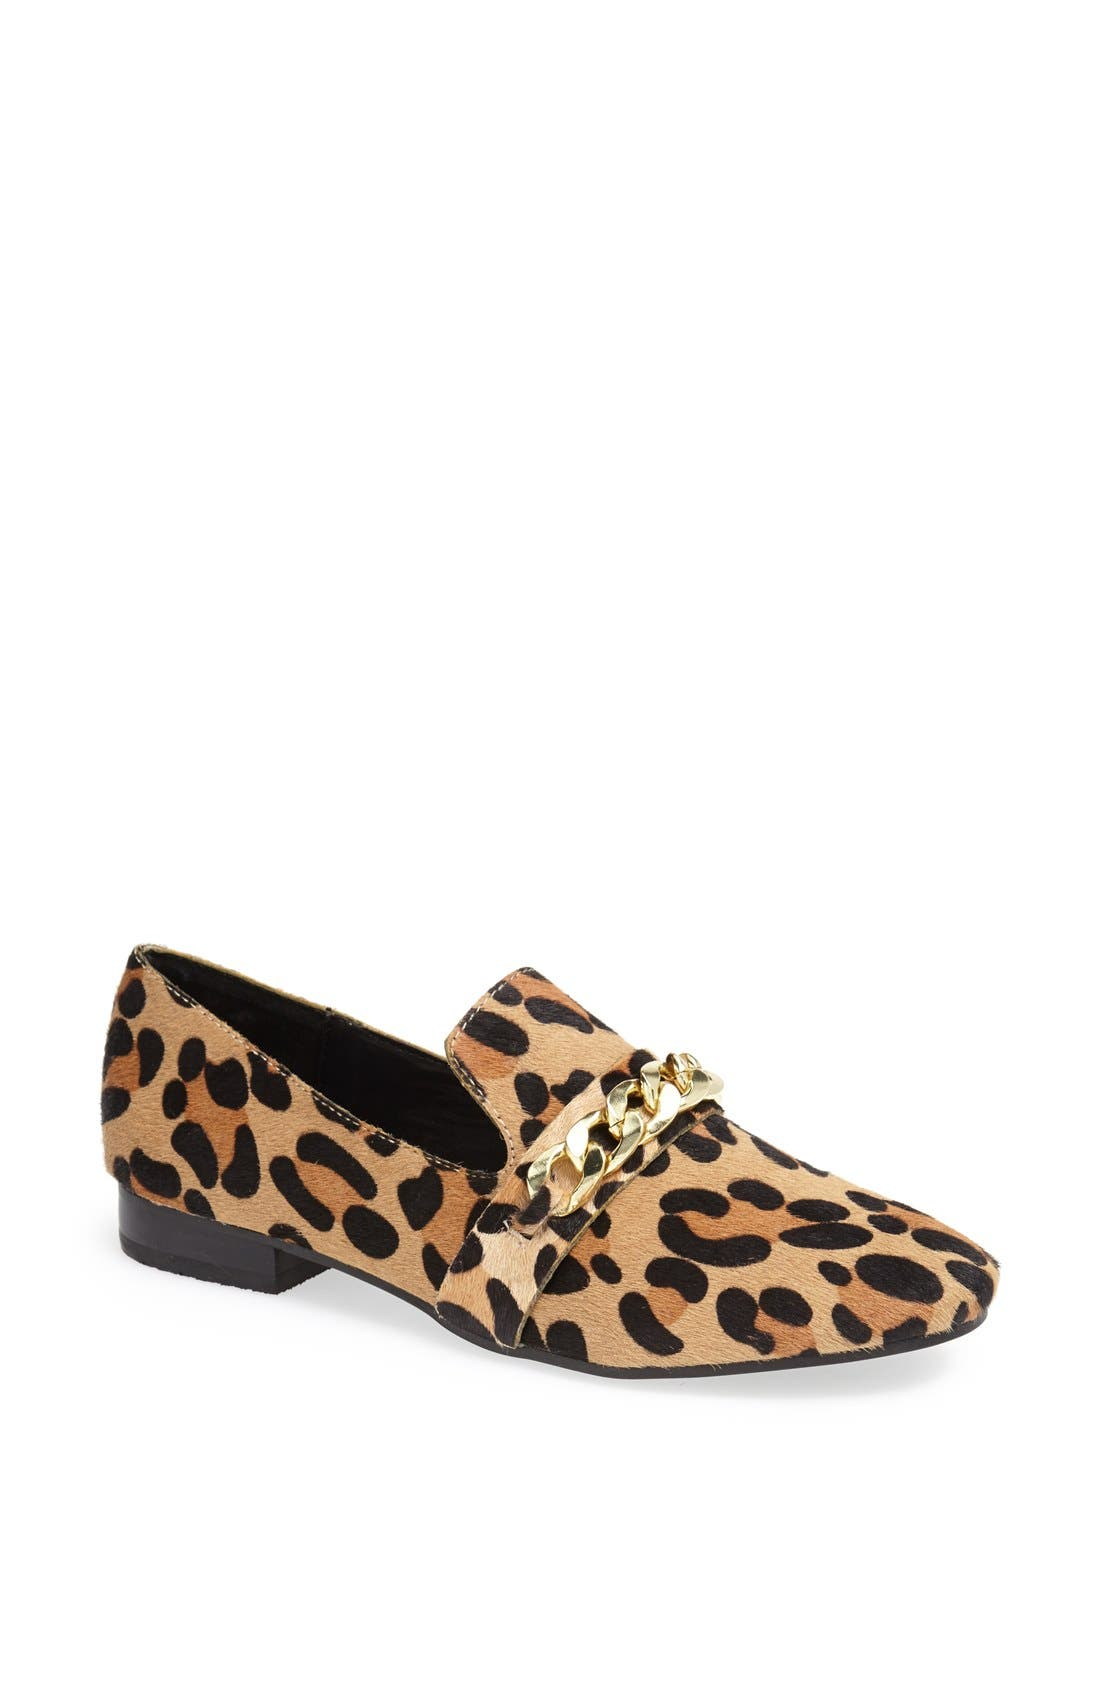 Alternate Image 1 Selected - Steve Madden 'Chaingng' Calf Hair Flat